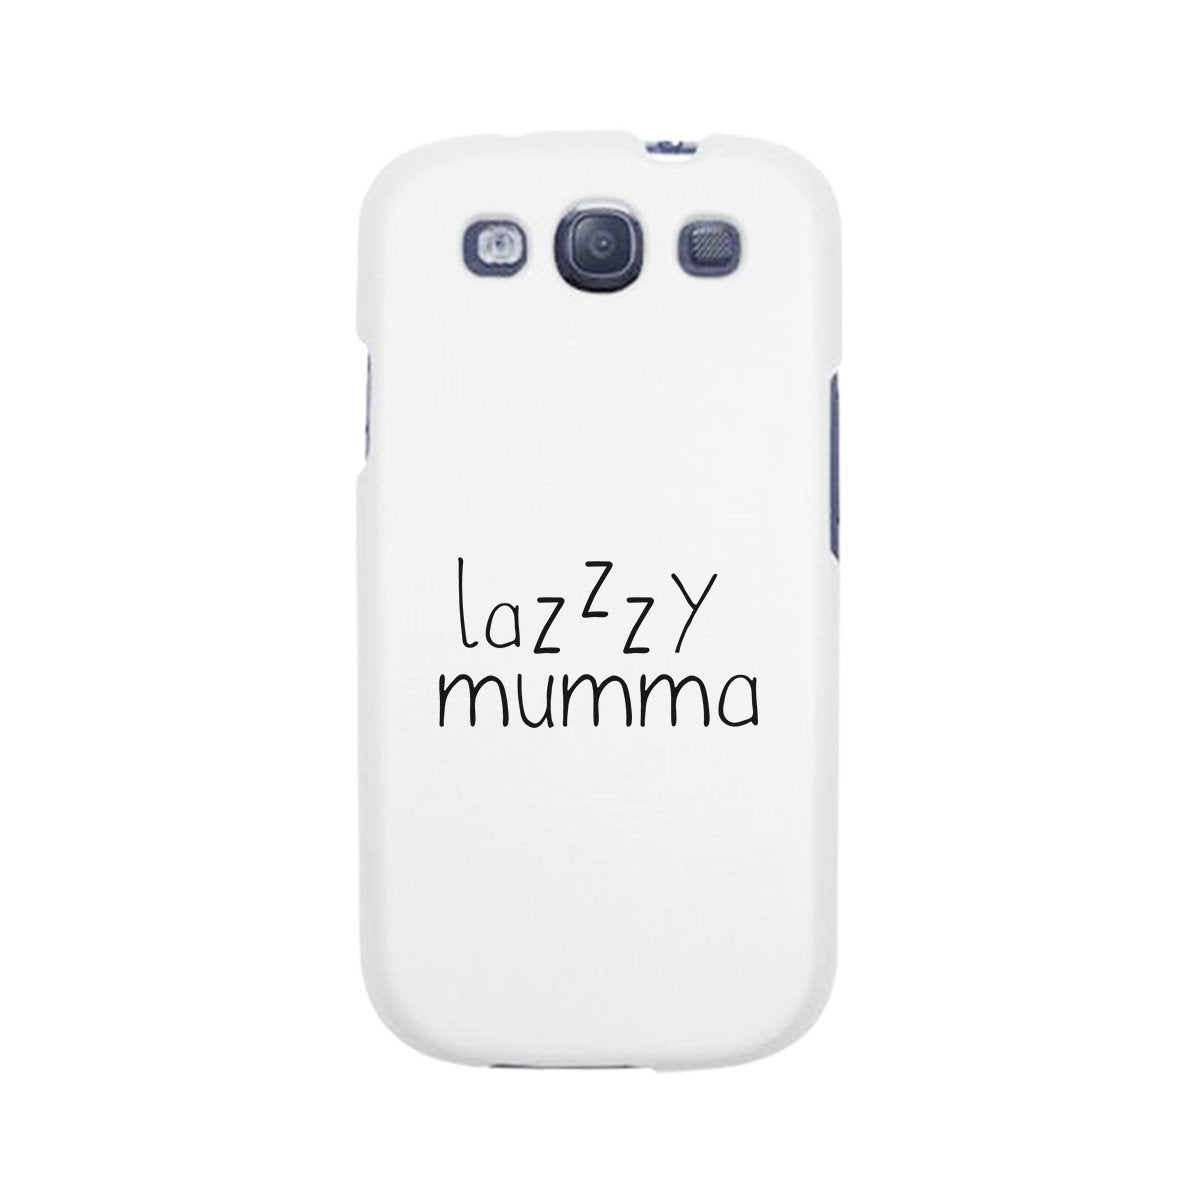 Lazzzy Mumma White Phone Case Funny Design Gifts For Lazy Moms